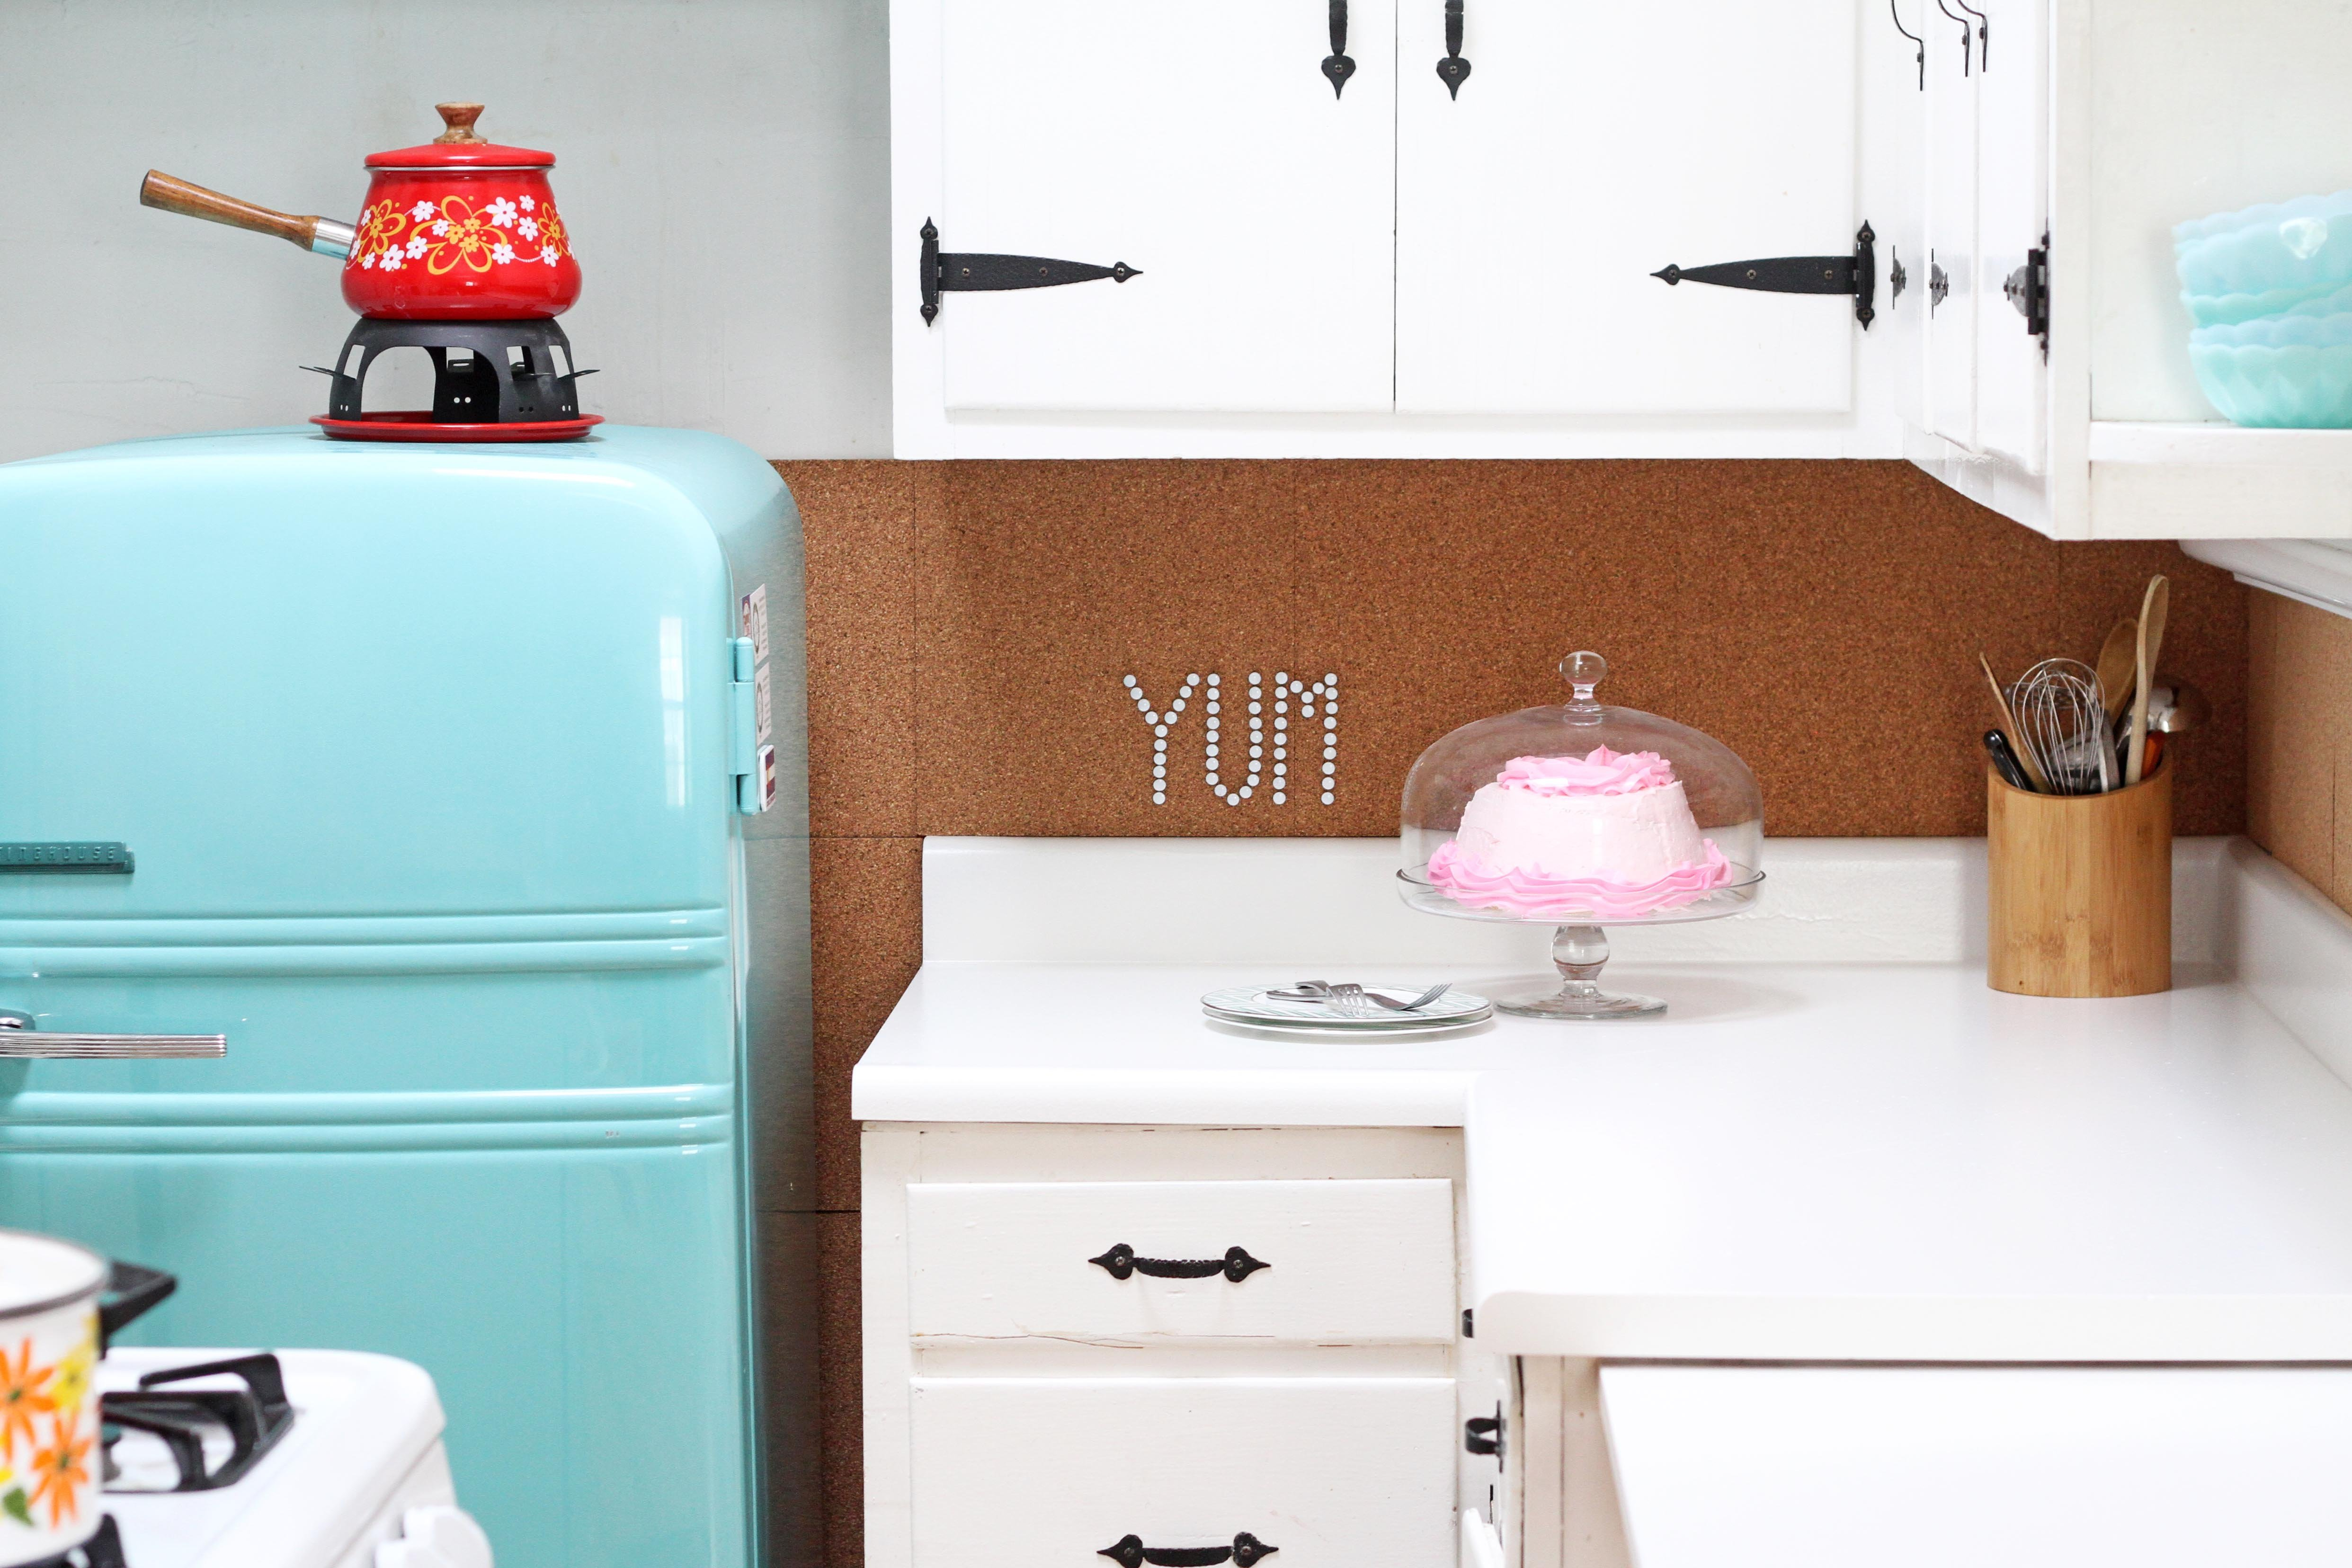 Tutorial: How to Paint Laminate Countertops with a Kit | Apartment